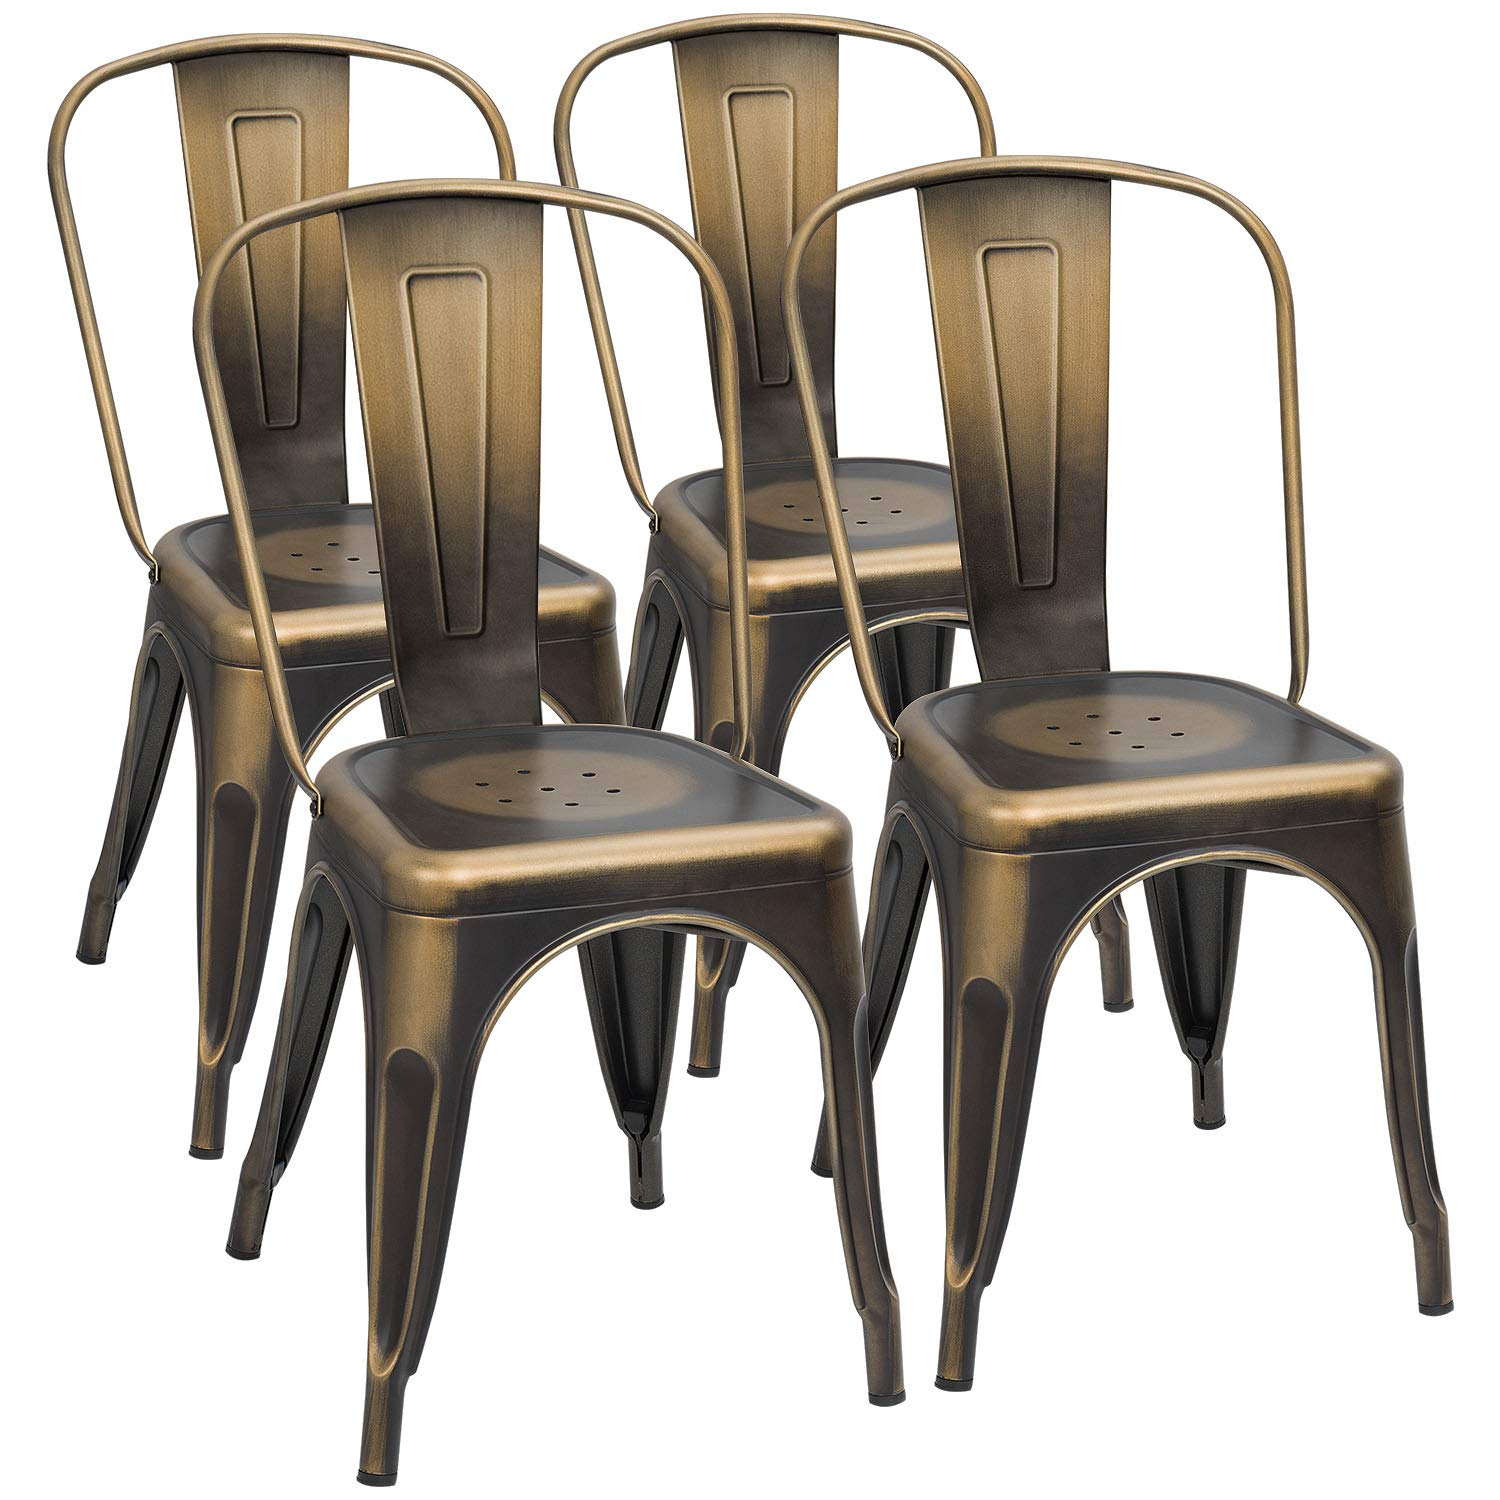 Furmax Metal Chairs Stackable Dining Indoor Outdoor Use Bistro Cafe Side Patio Chairs Set of 4 (Gold) by Furmax